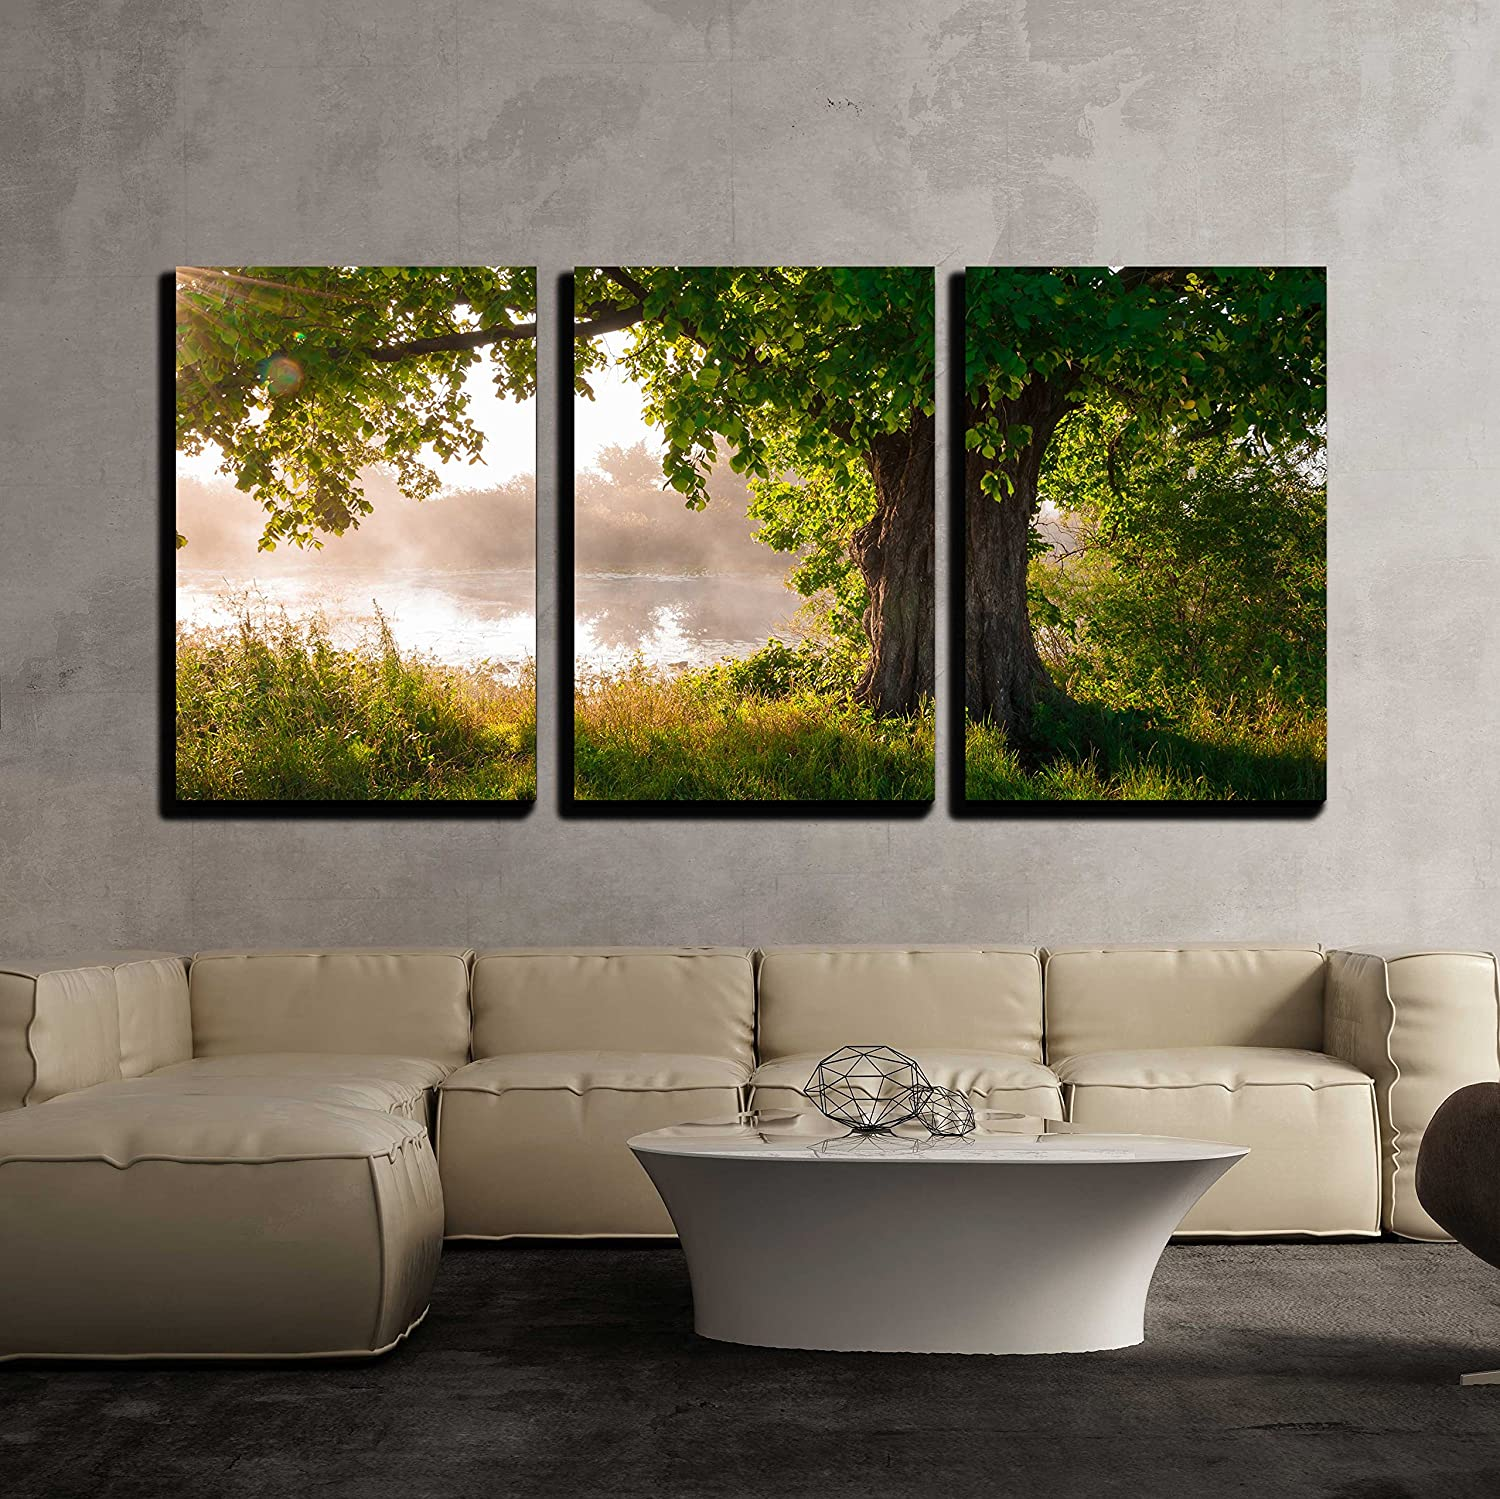 3 Piece Canvas Wall Art - Oak Tree in Full Leaf in Summer Standing Alone - Modern Home Art Stretched and Framed Ready to Hang - 16